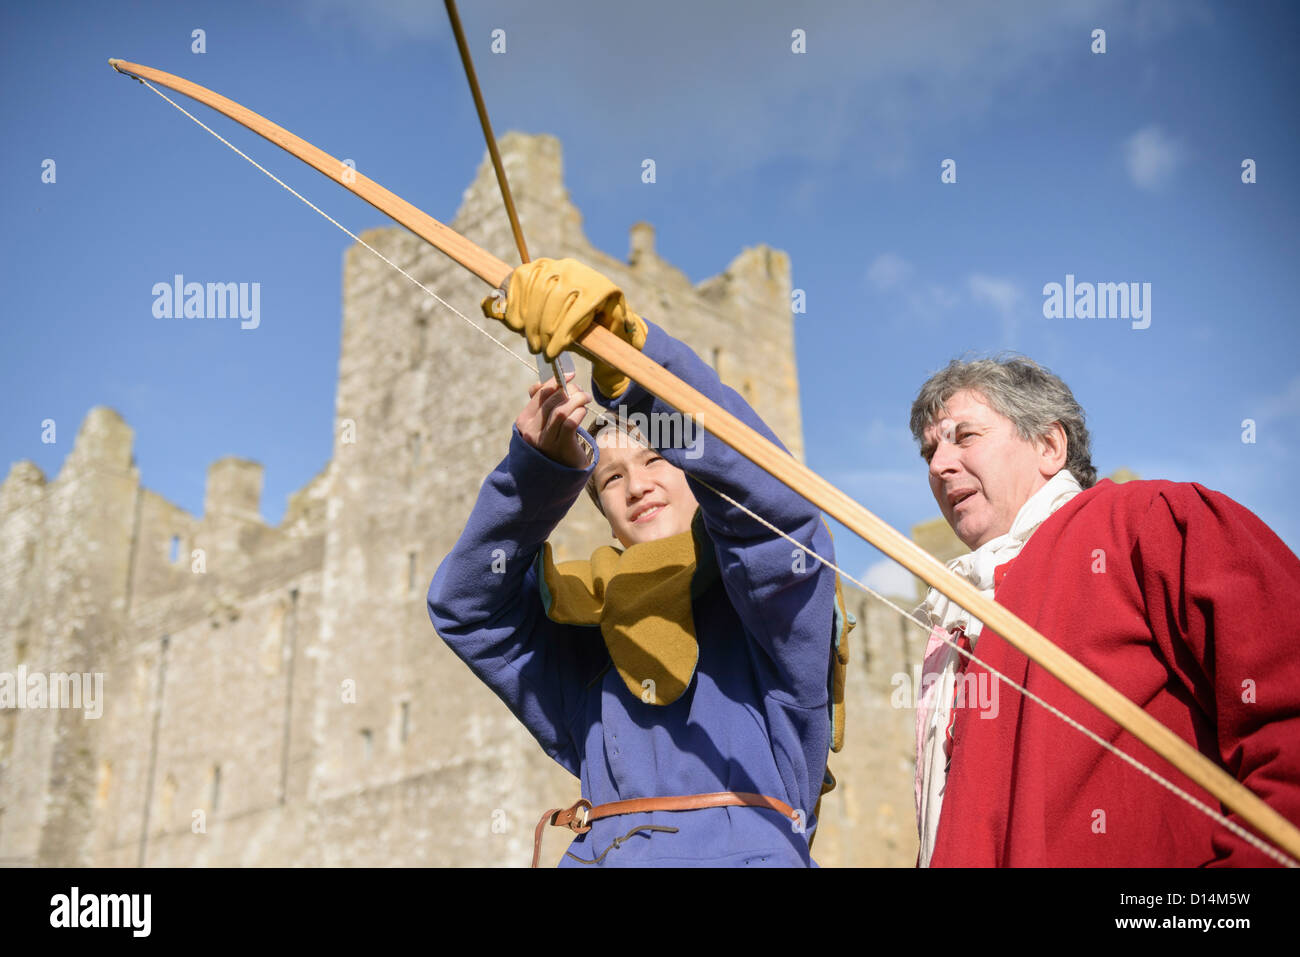 Student in period dress shooting arrow - Stock Image